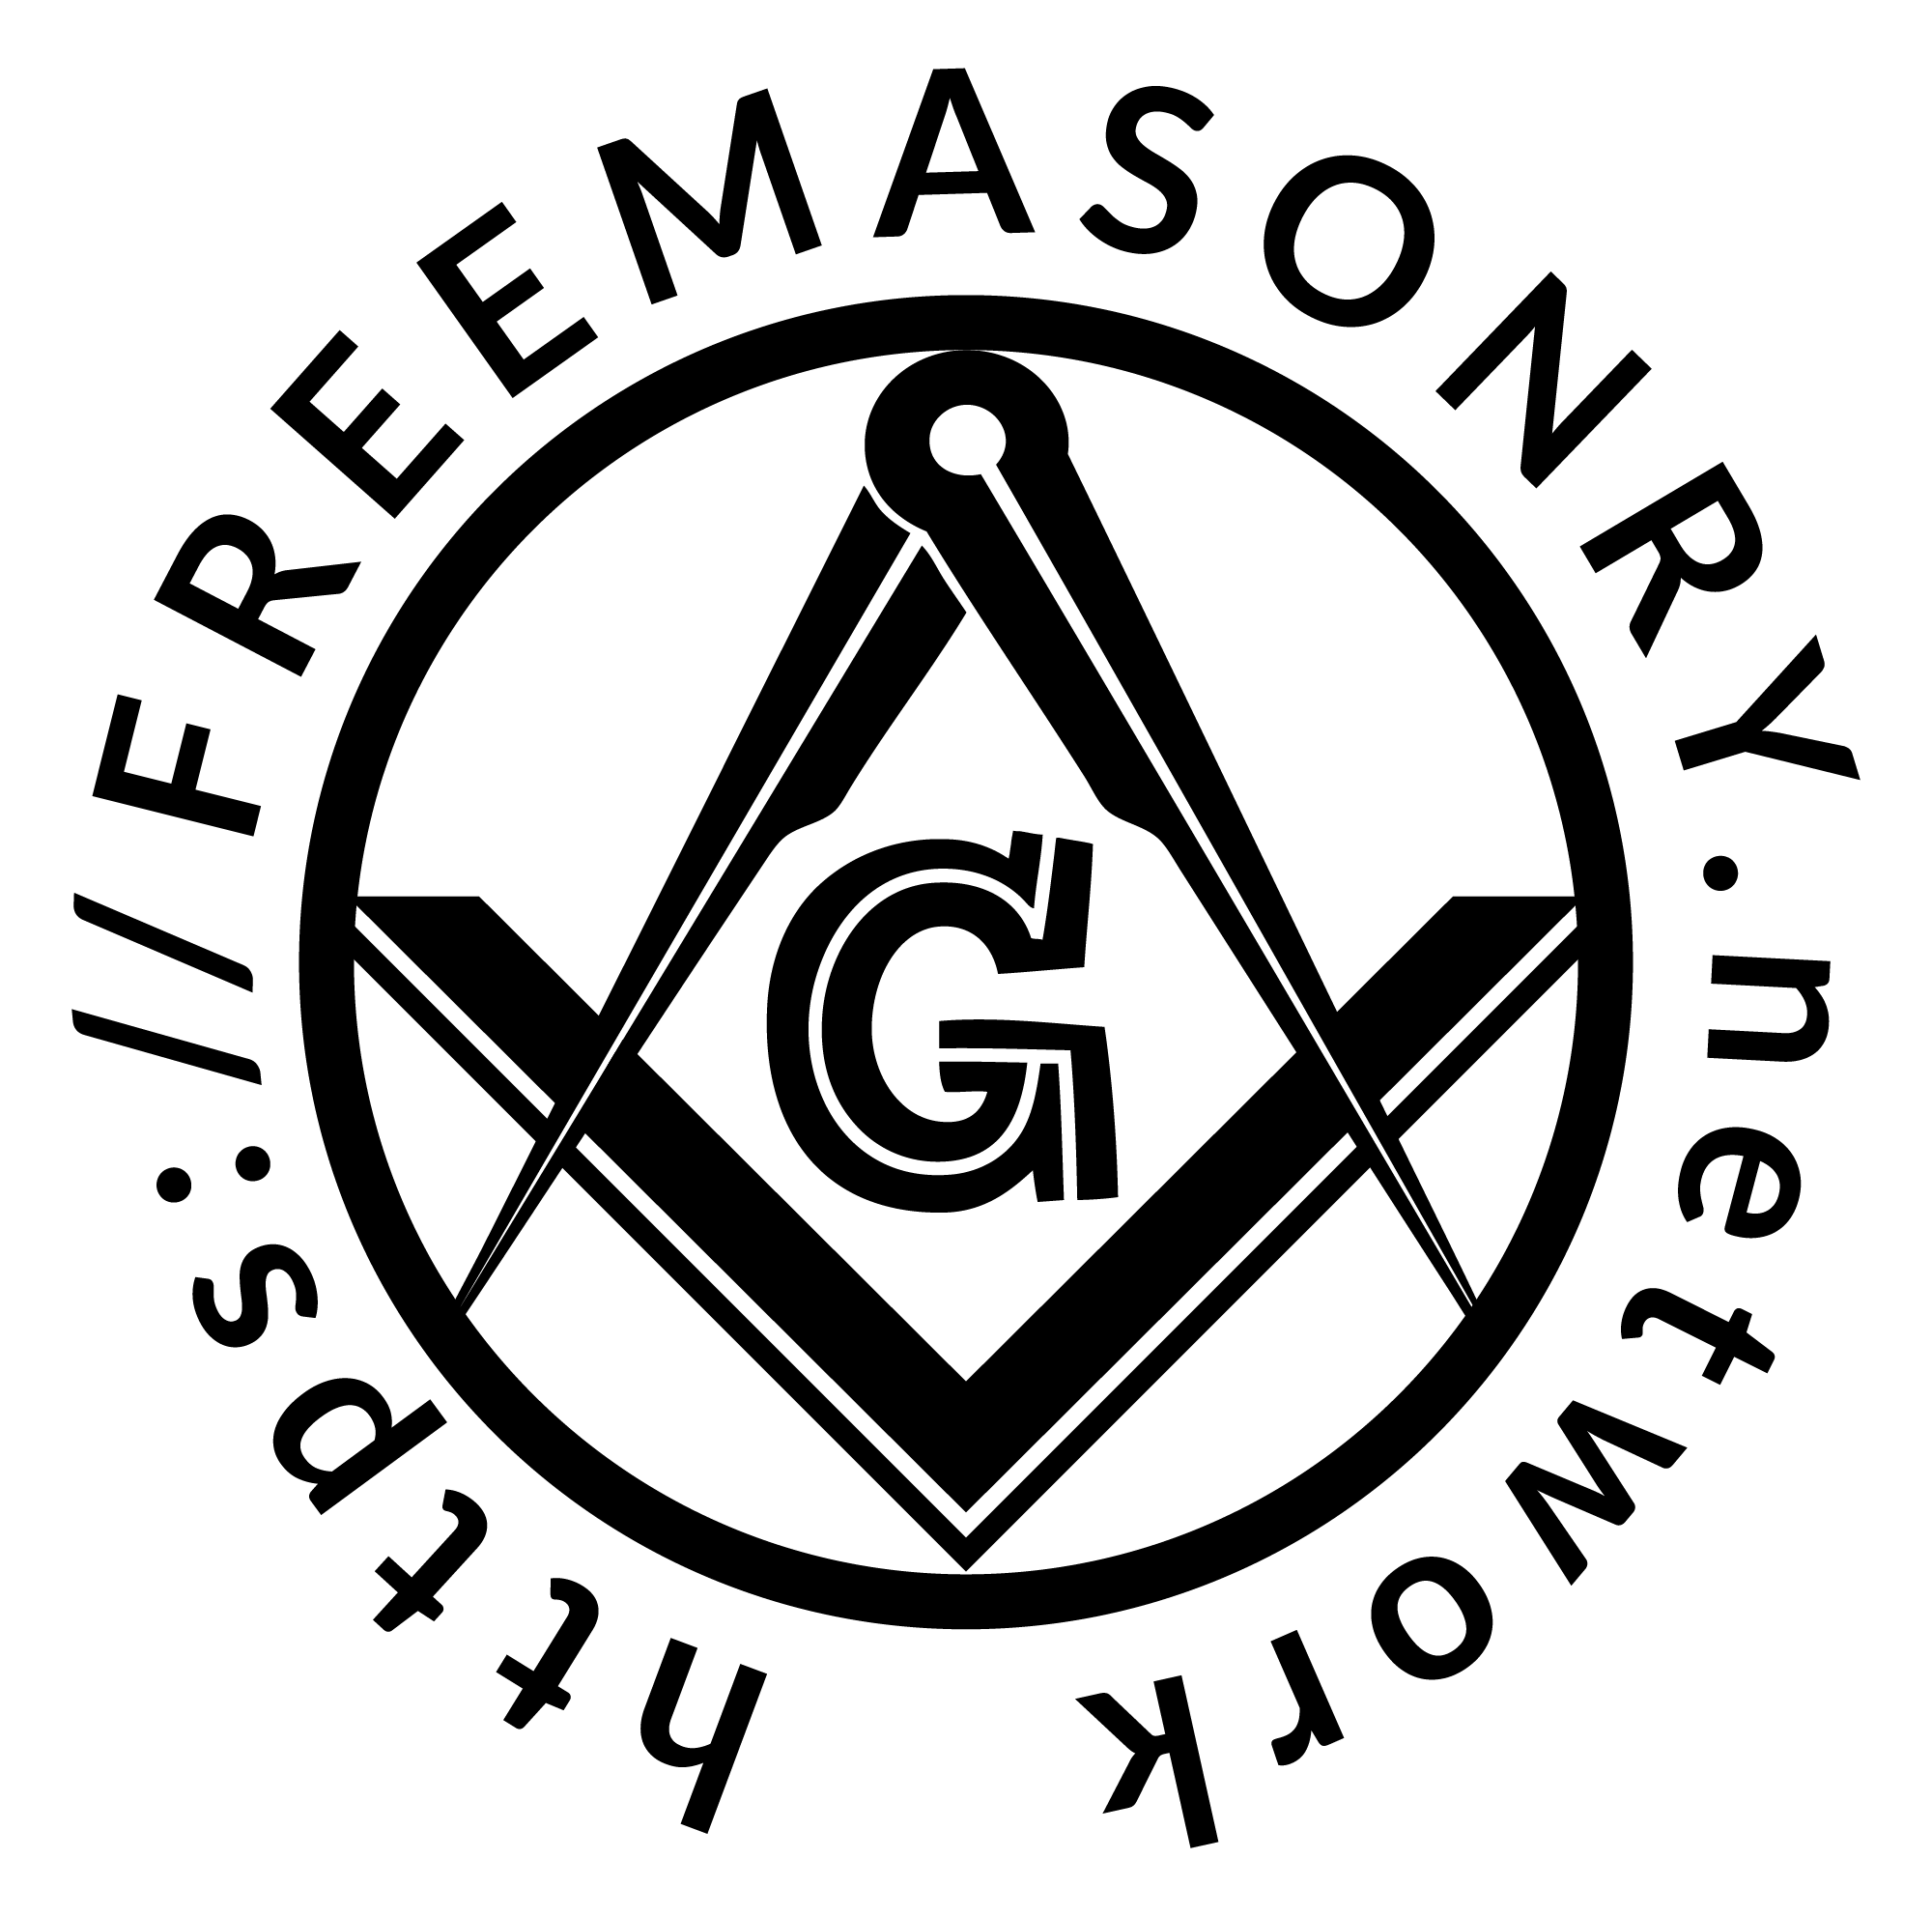 MASONIC CORNERSTONES